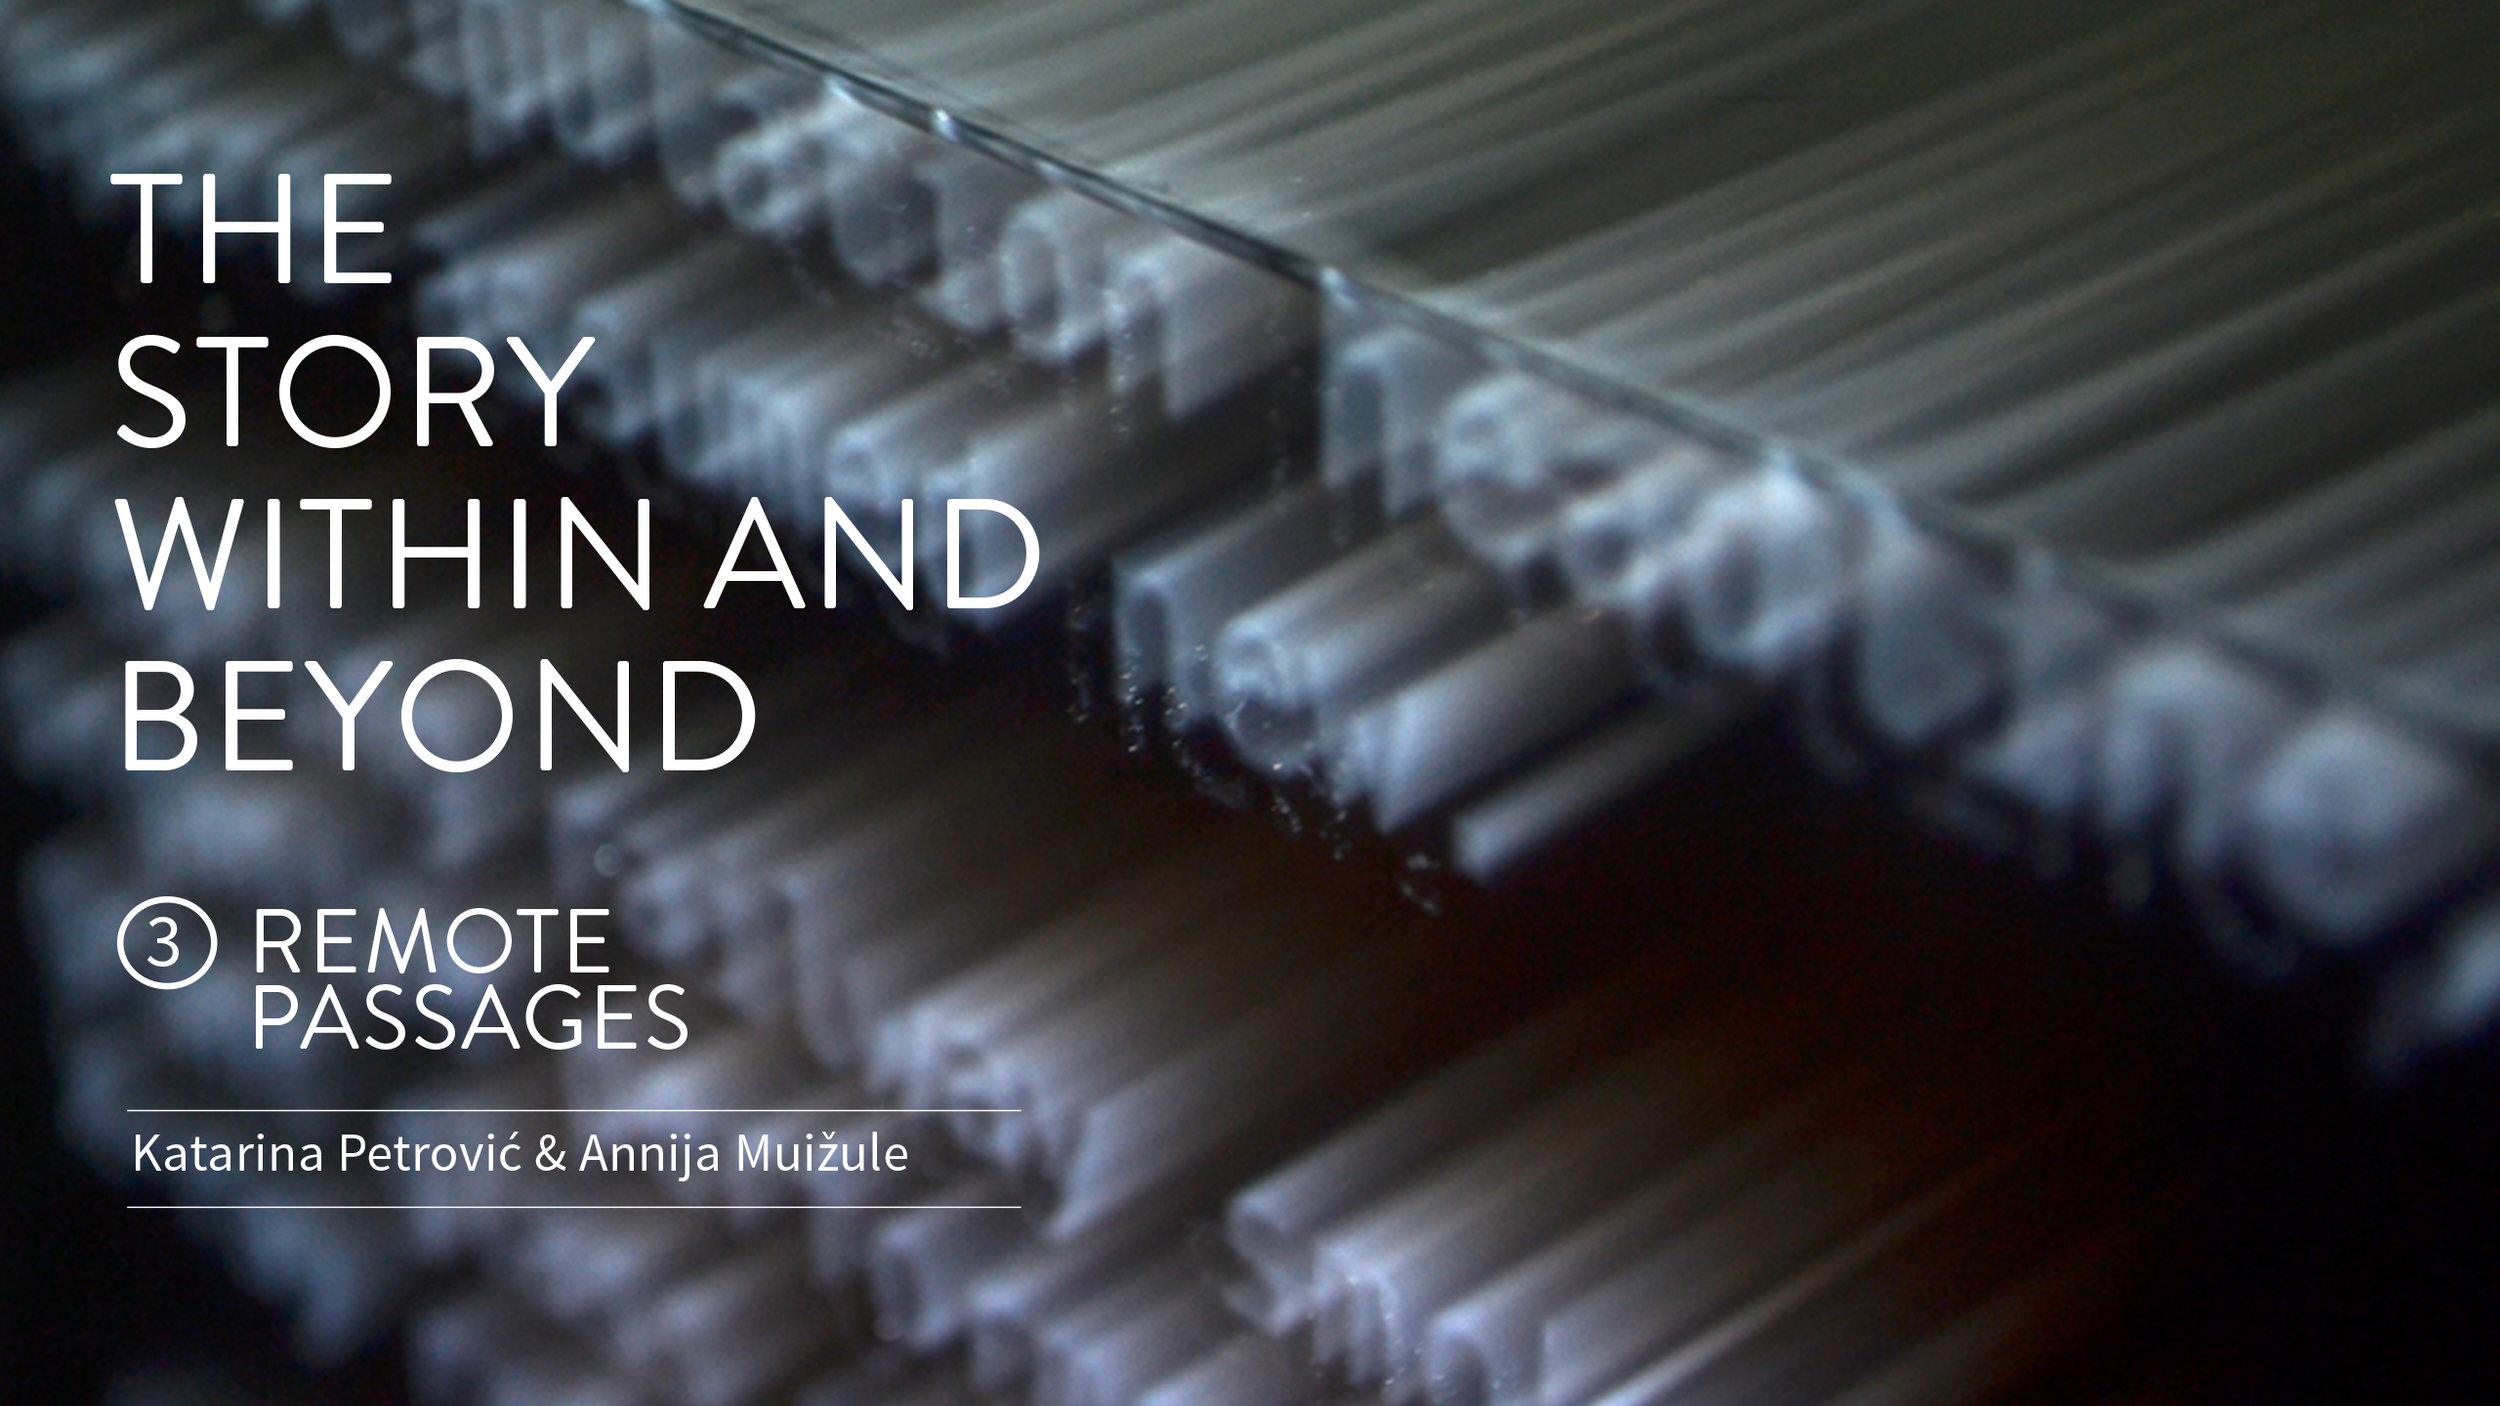 THE STORY WITHIN AND BEYONDPART III:Remote Passages - Annija Muižule & Katarina PetrovićAPRIL 6TH - APRIL 22THOPENING: FRIDAY, APRIL 6TH, 19:00 HOPEN: FRI - SUN | 13:00 - 17:00 H